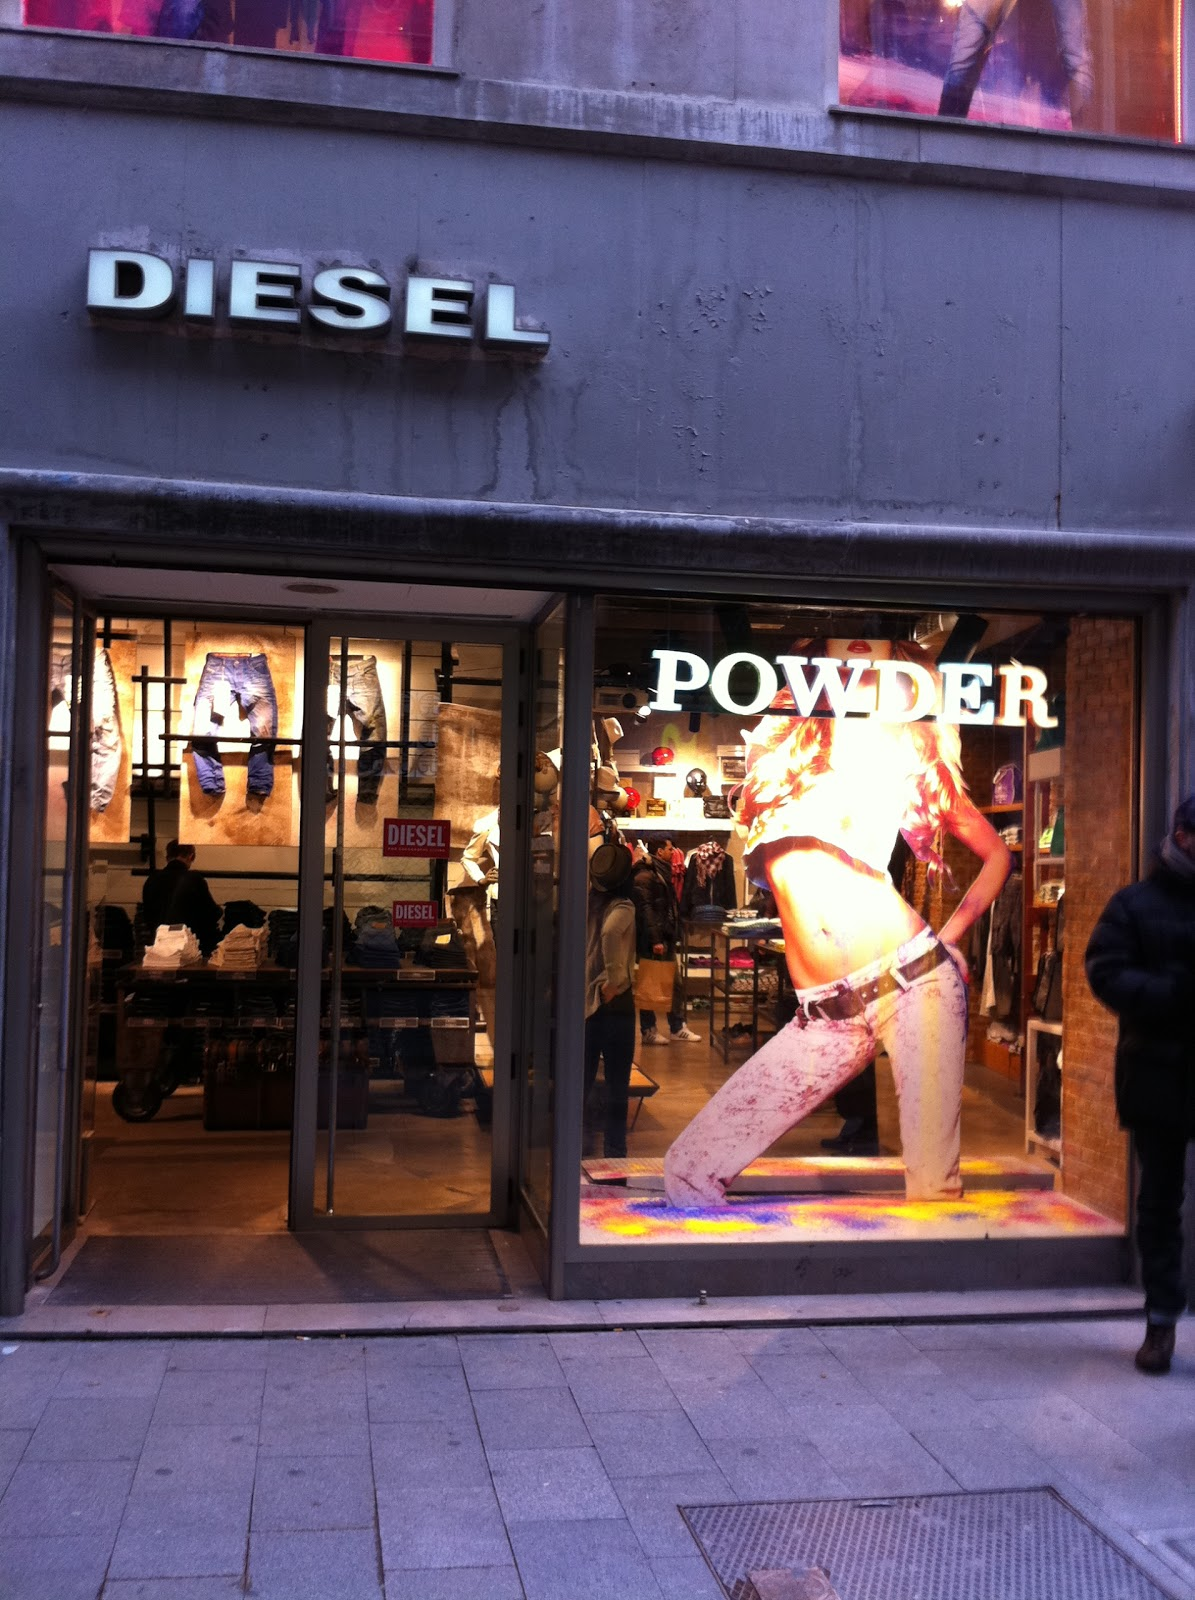 7d12af8d The Men's Things: DIESEL Presents the new powder & dirty denim ...